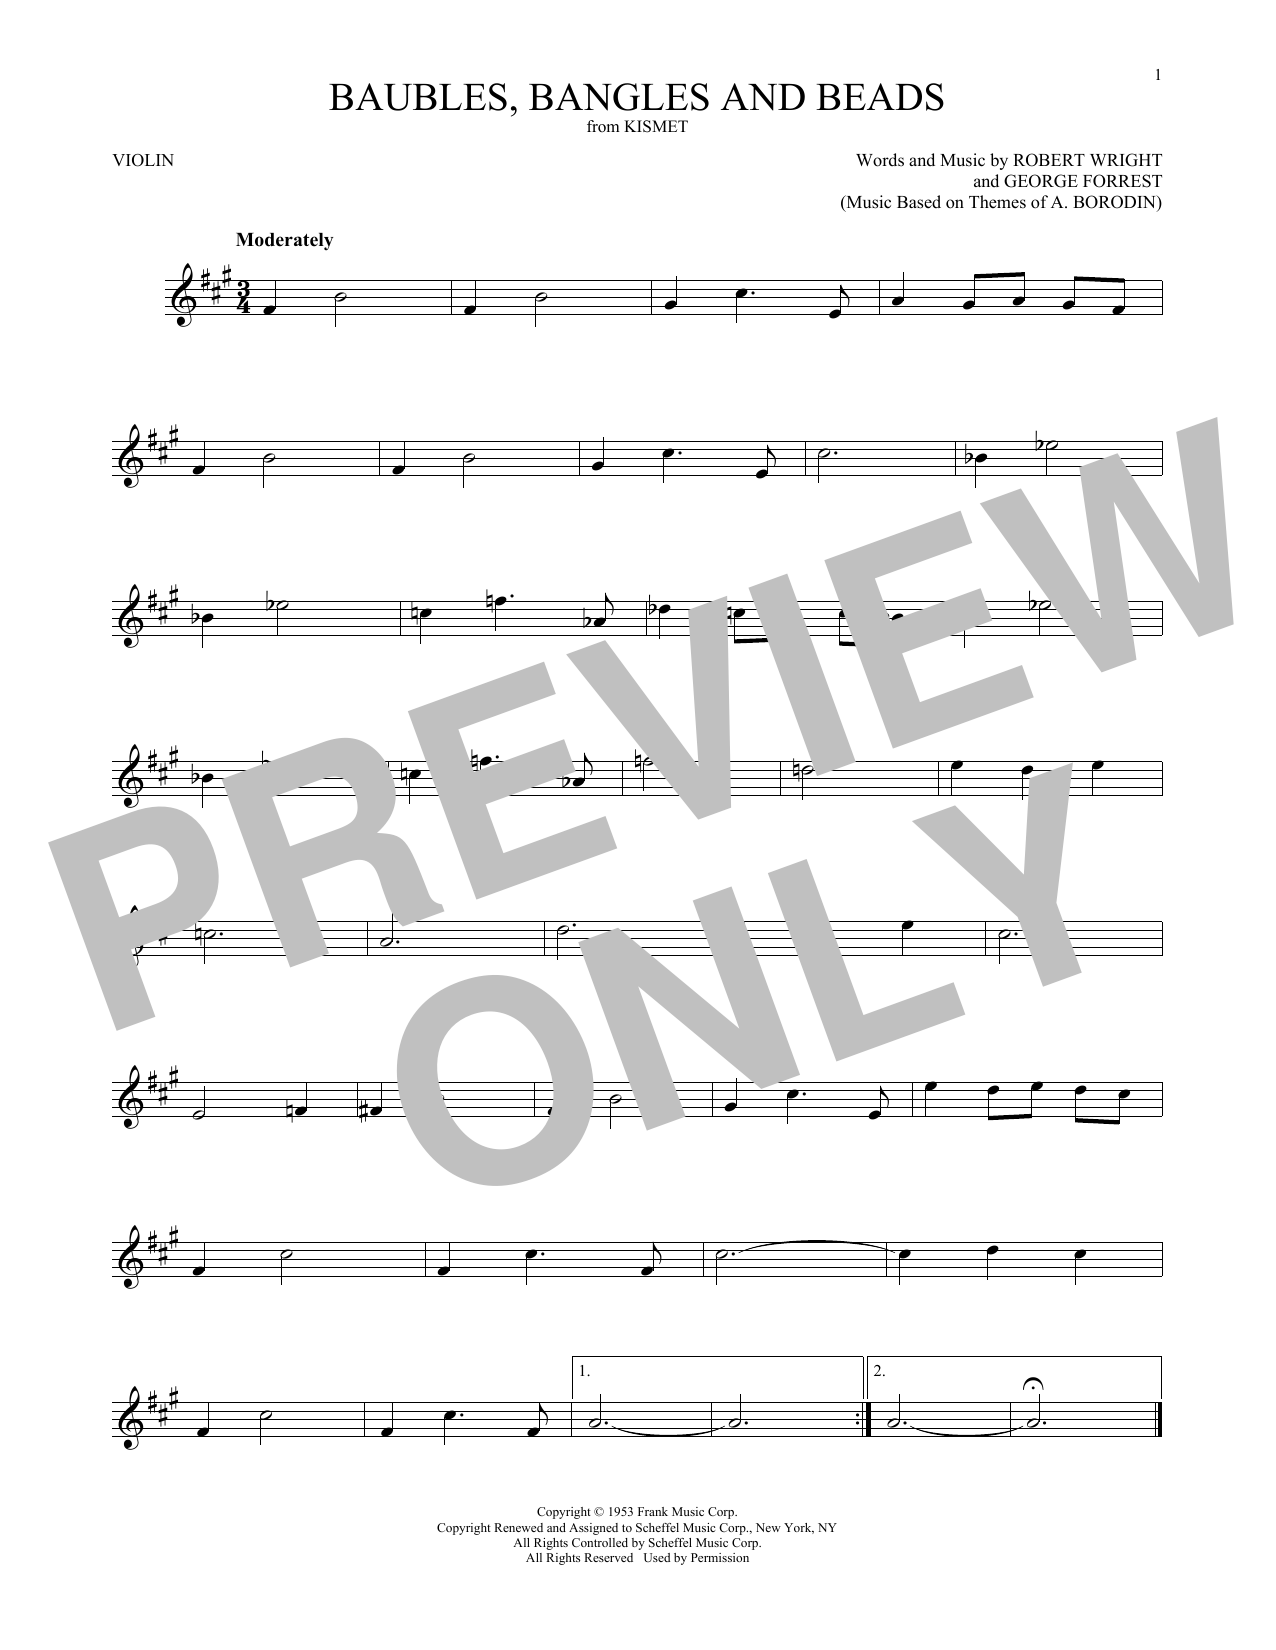 George Forrest Baubles, Bangles And Beads sheet music notes and chords. Download Printable PDF.